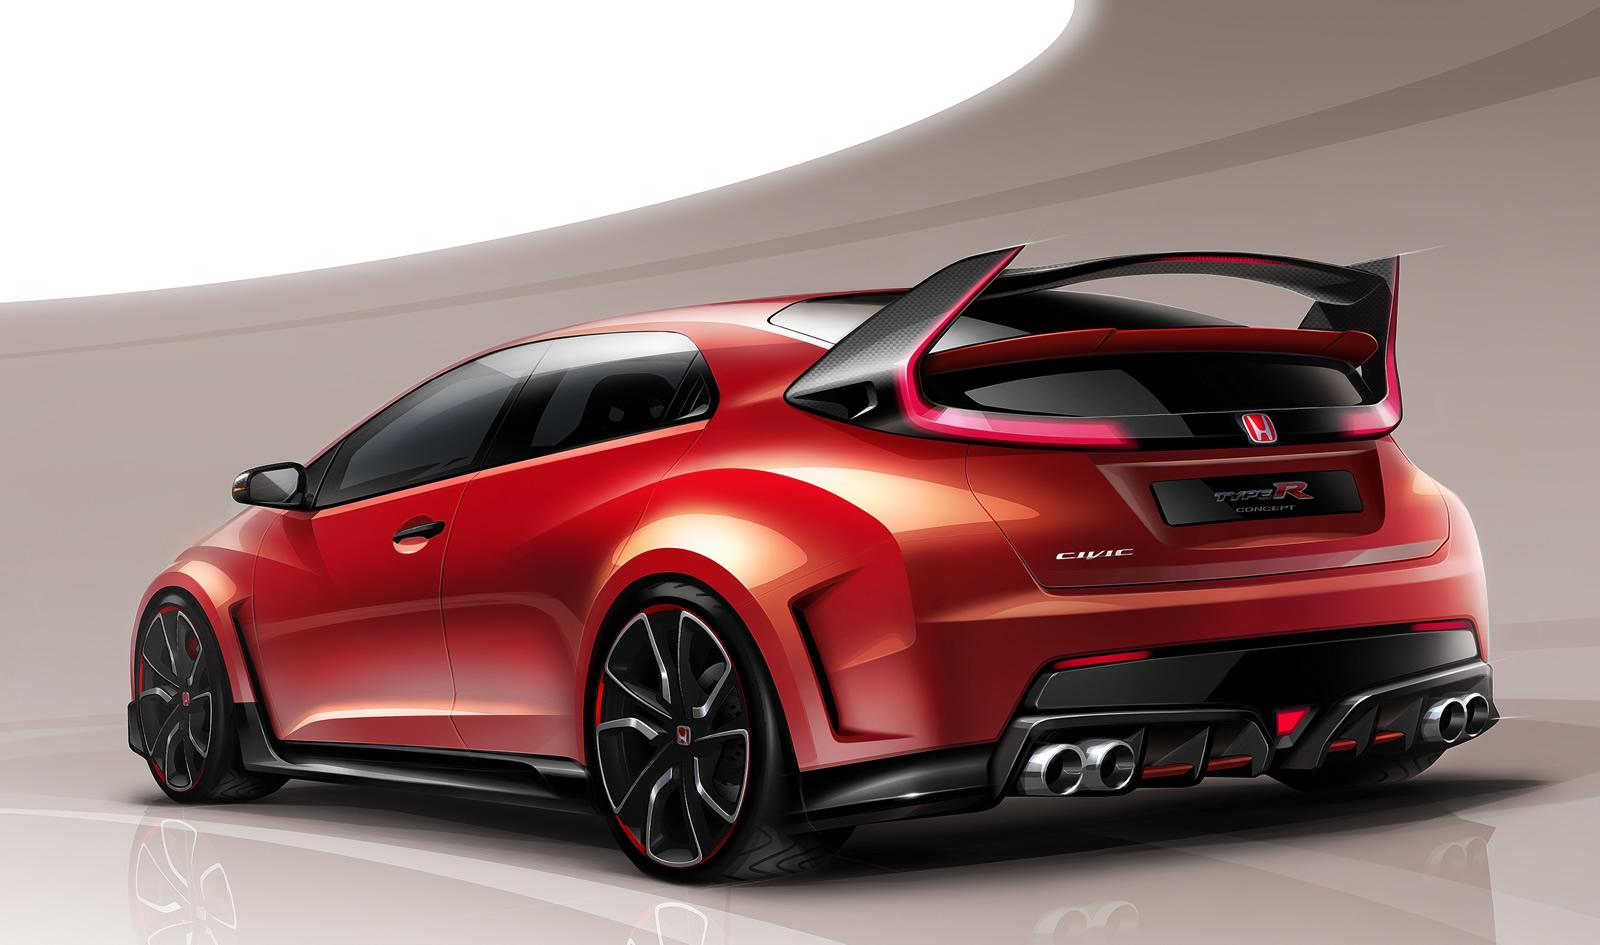 2010 Honda Civic Type R 2015-honda-civic-type-r-sketch